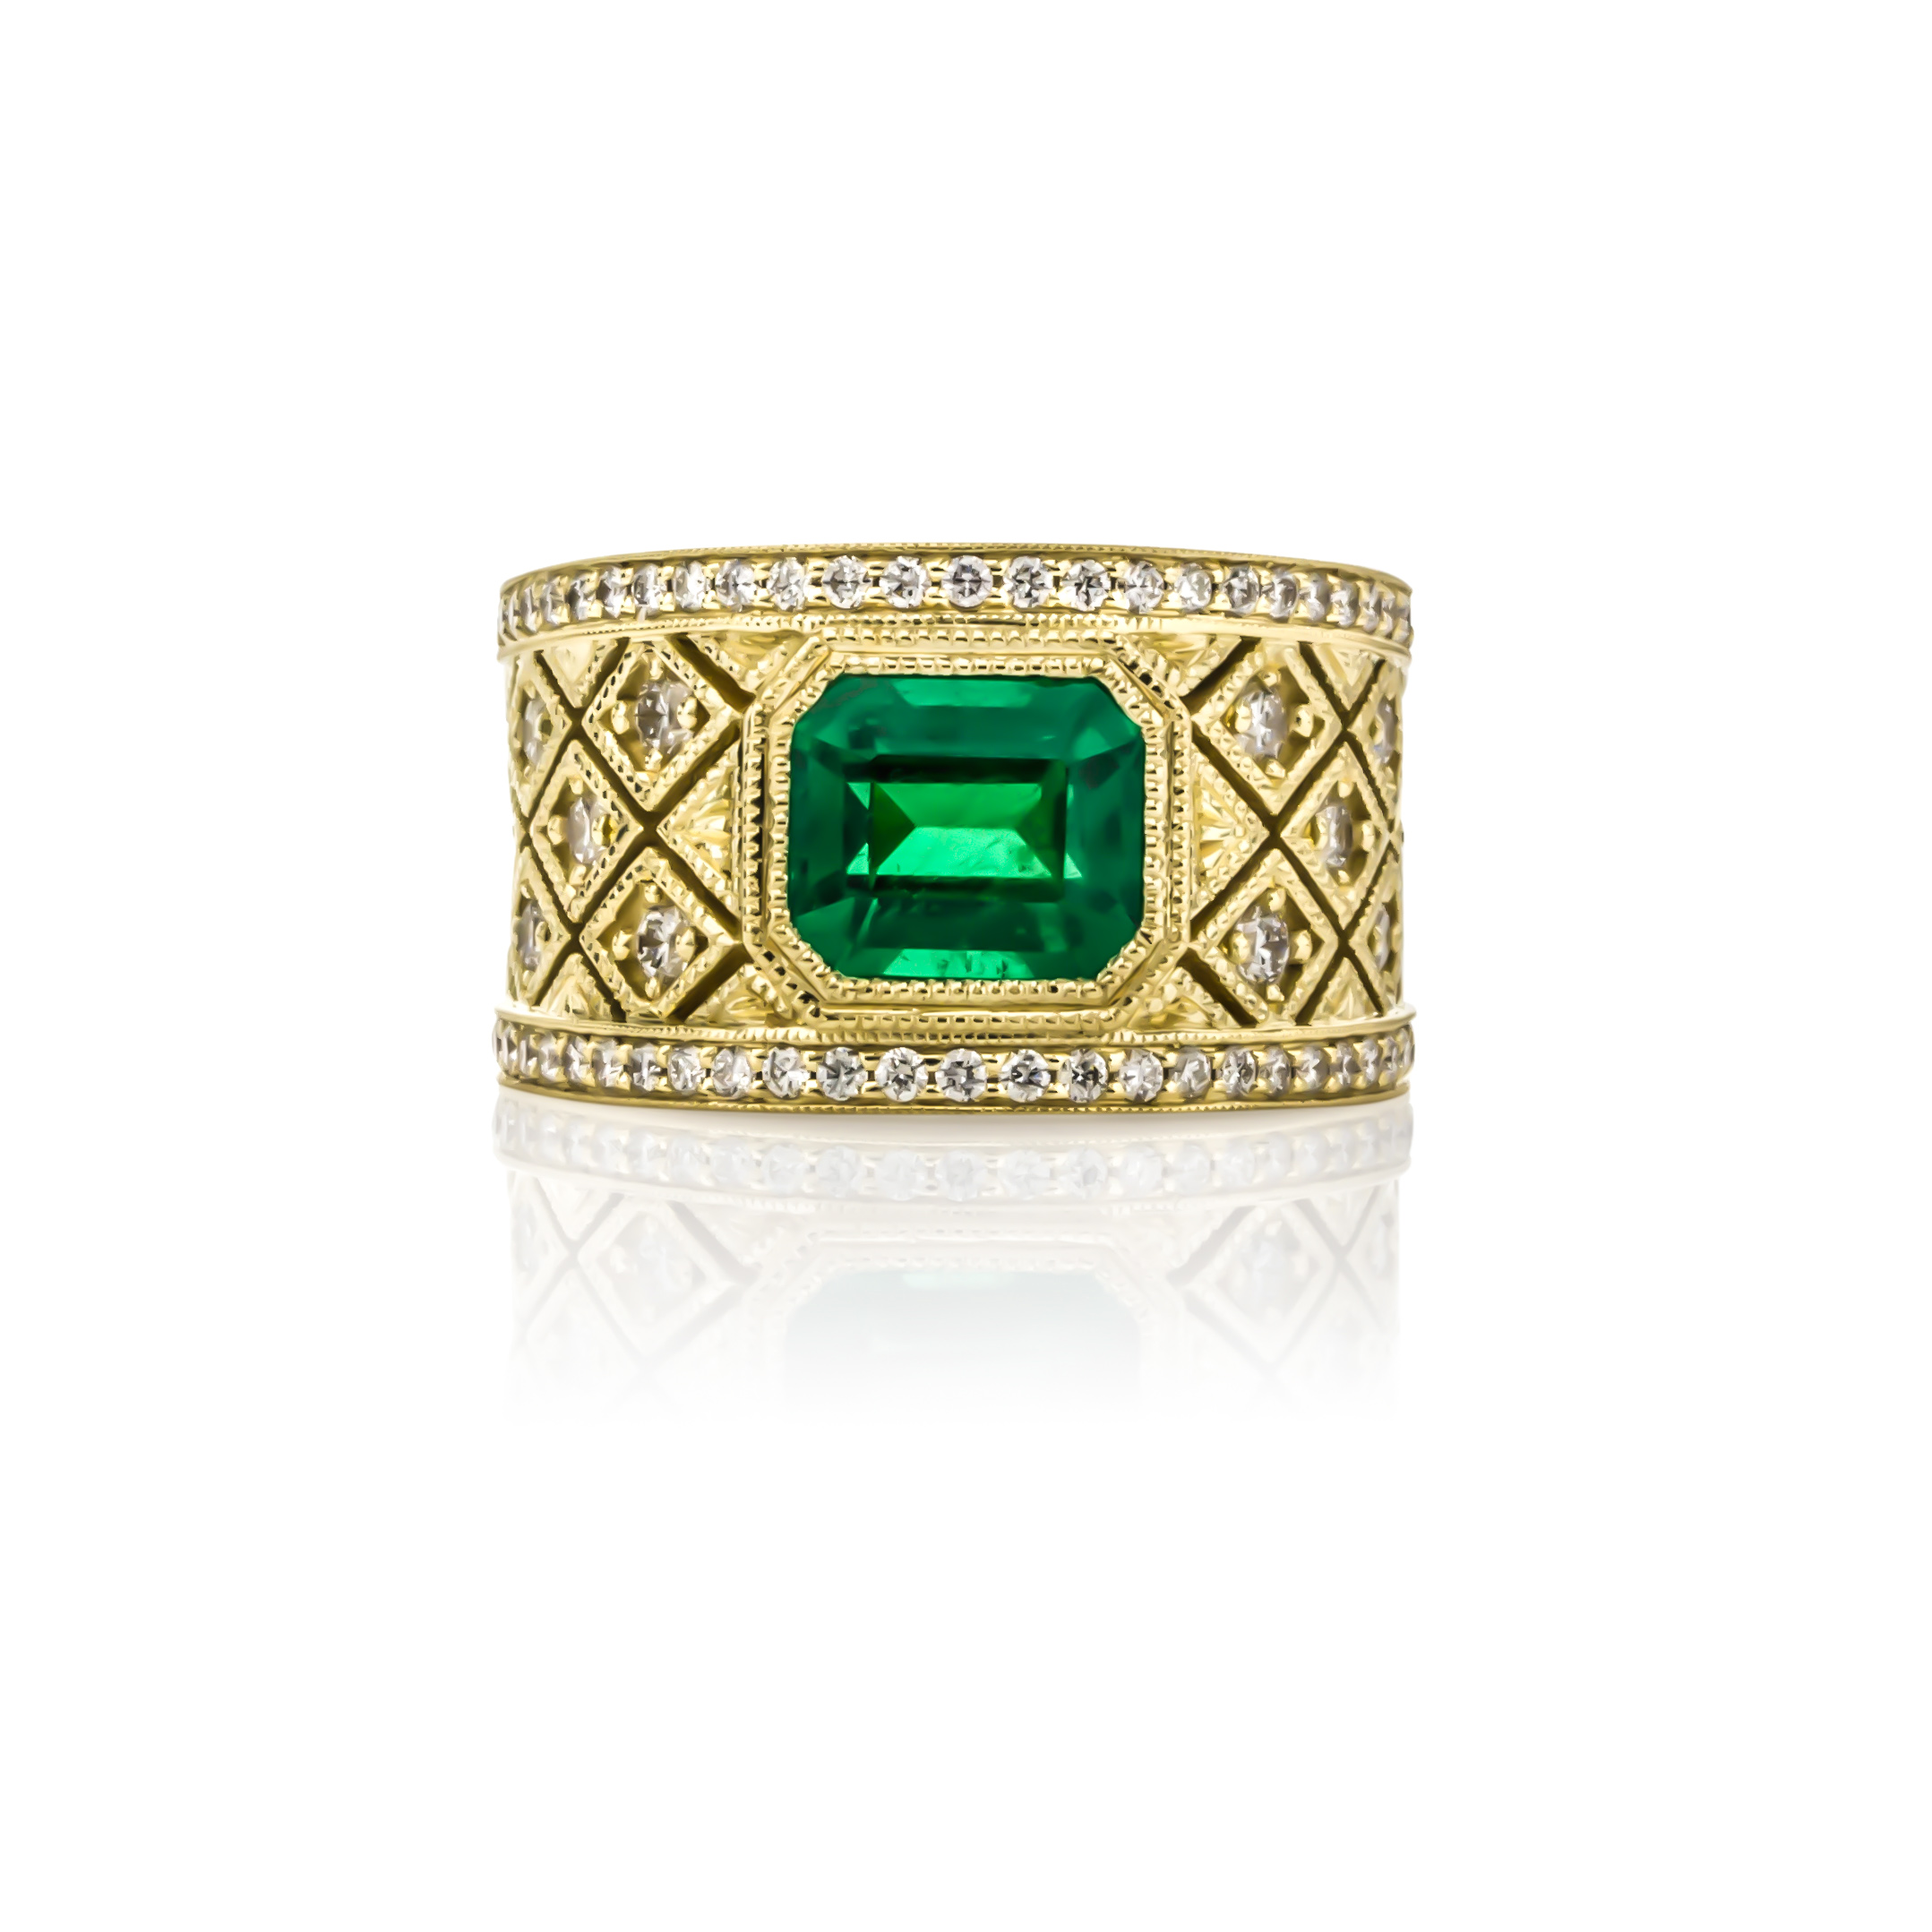 CUSTOM EMERALD AND DIAMOND RING SET IN 18K YELLOW GOLD WITH HAND-ENGRAVED DETAIL